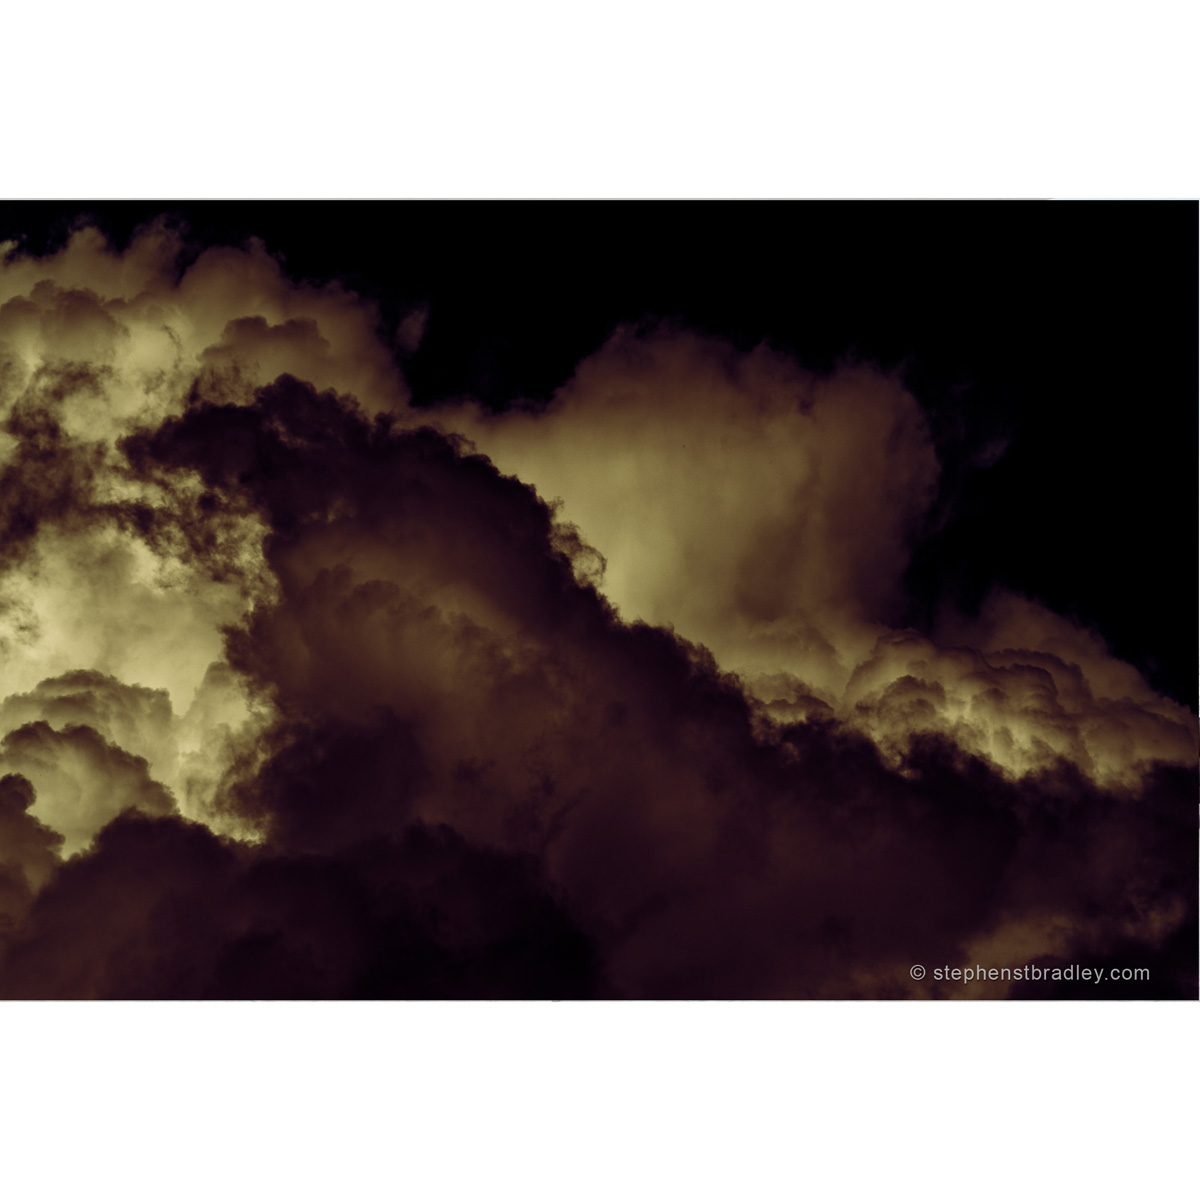 Rebirthed - limited edition photo of clouds over Glencorp, County Antrim, by photographer Stephen S T Bradley